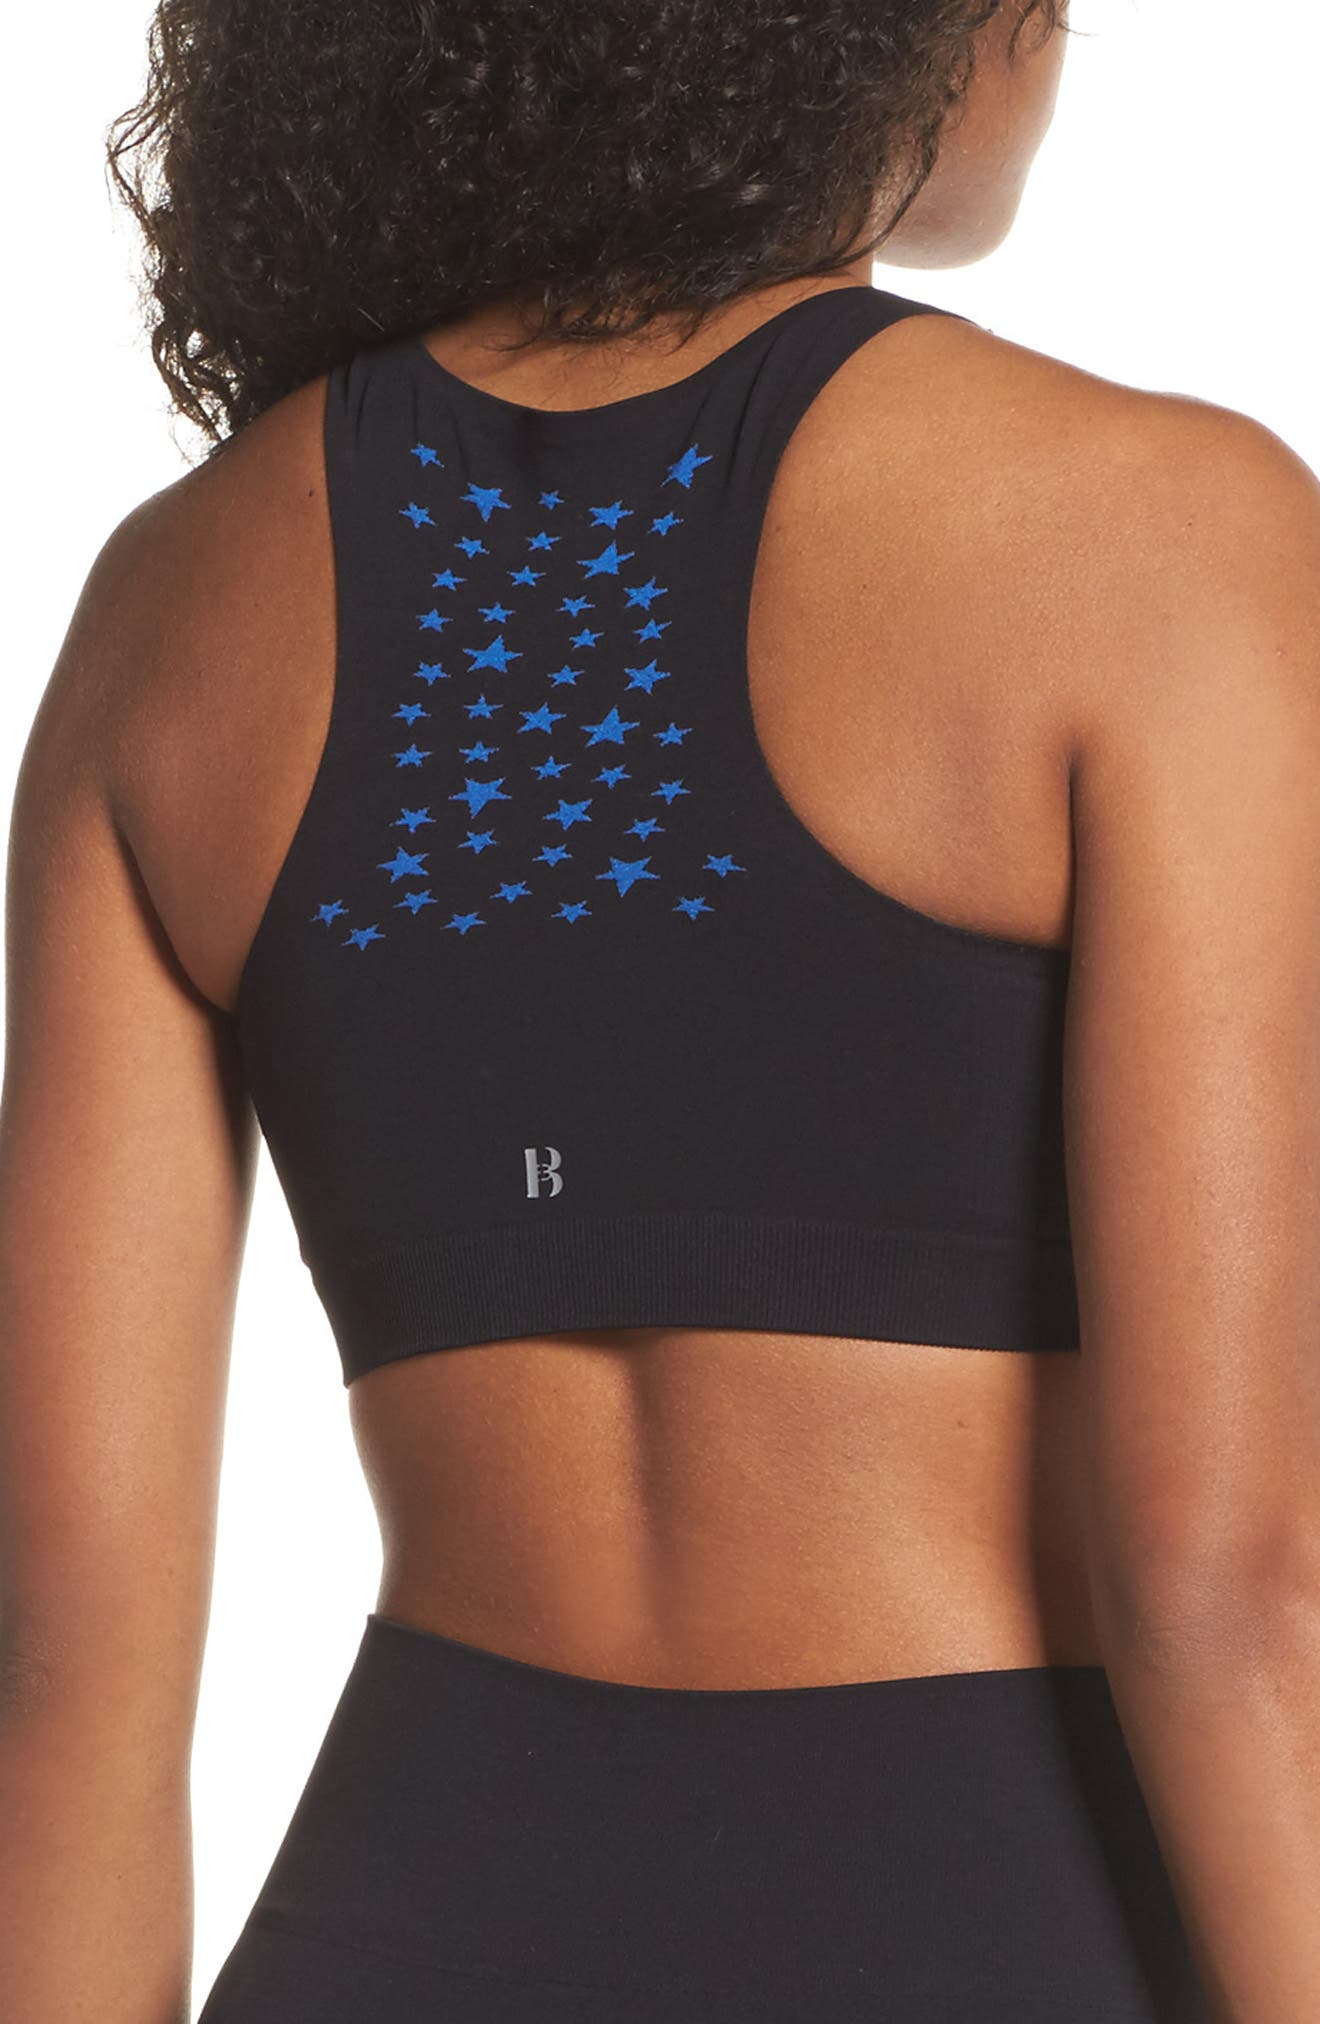 BoomBoom Athletic Seamless Star Sports Bra,                             Alternate thumbnail 2, color,                             005